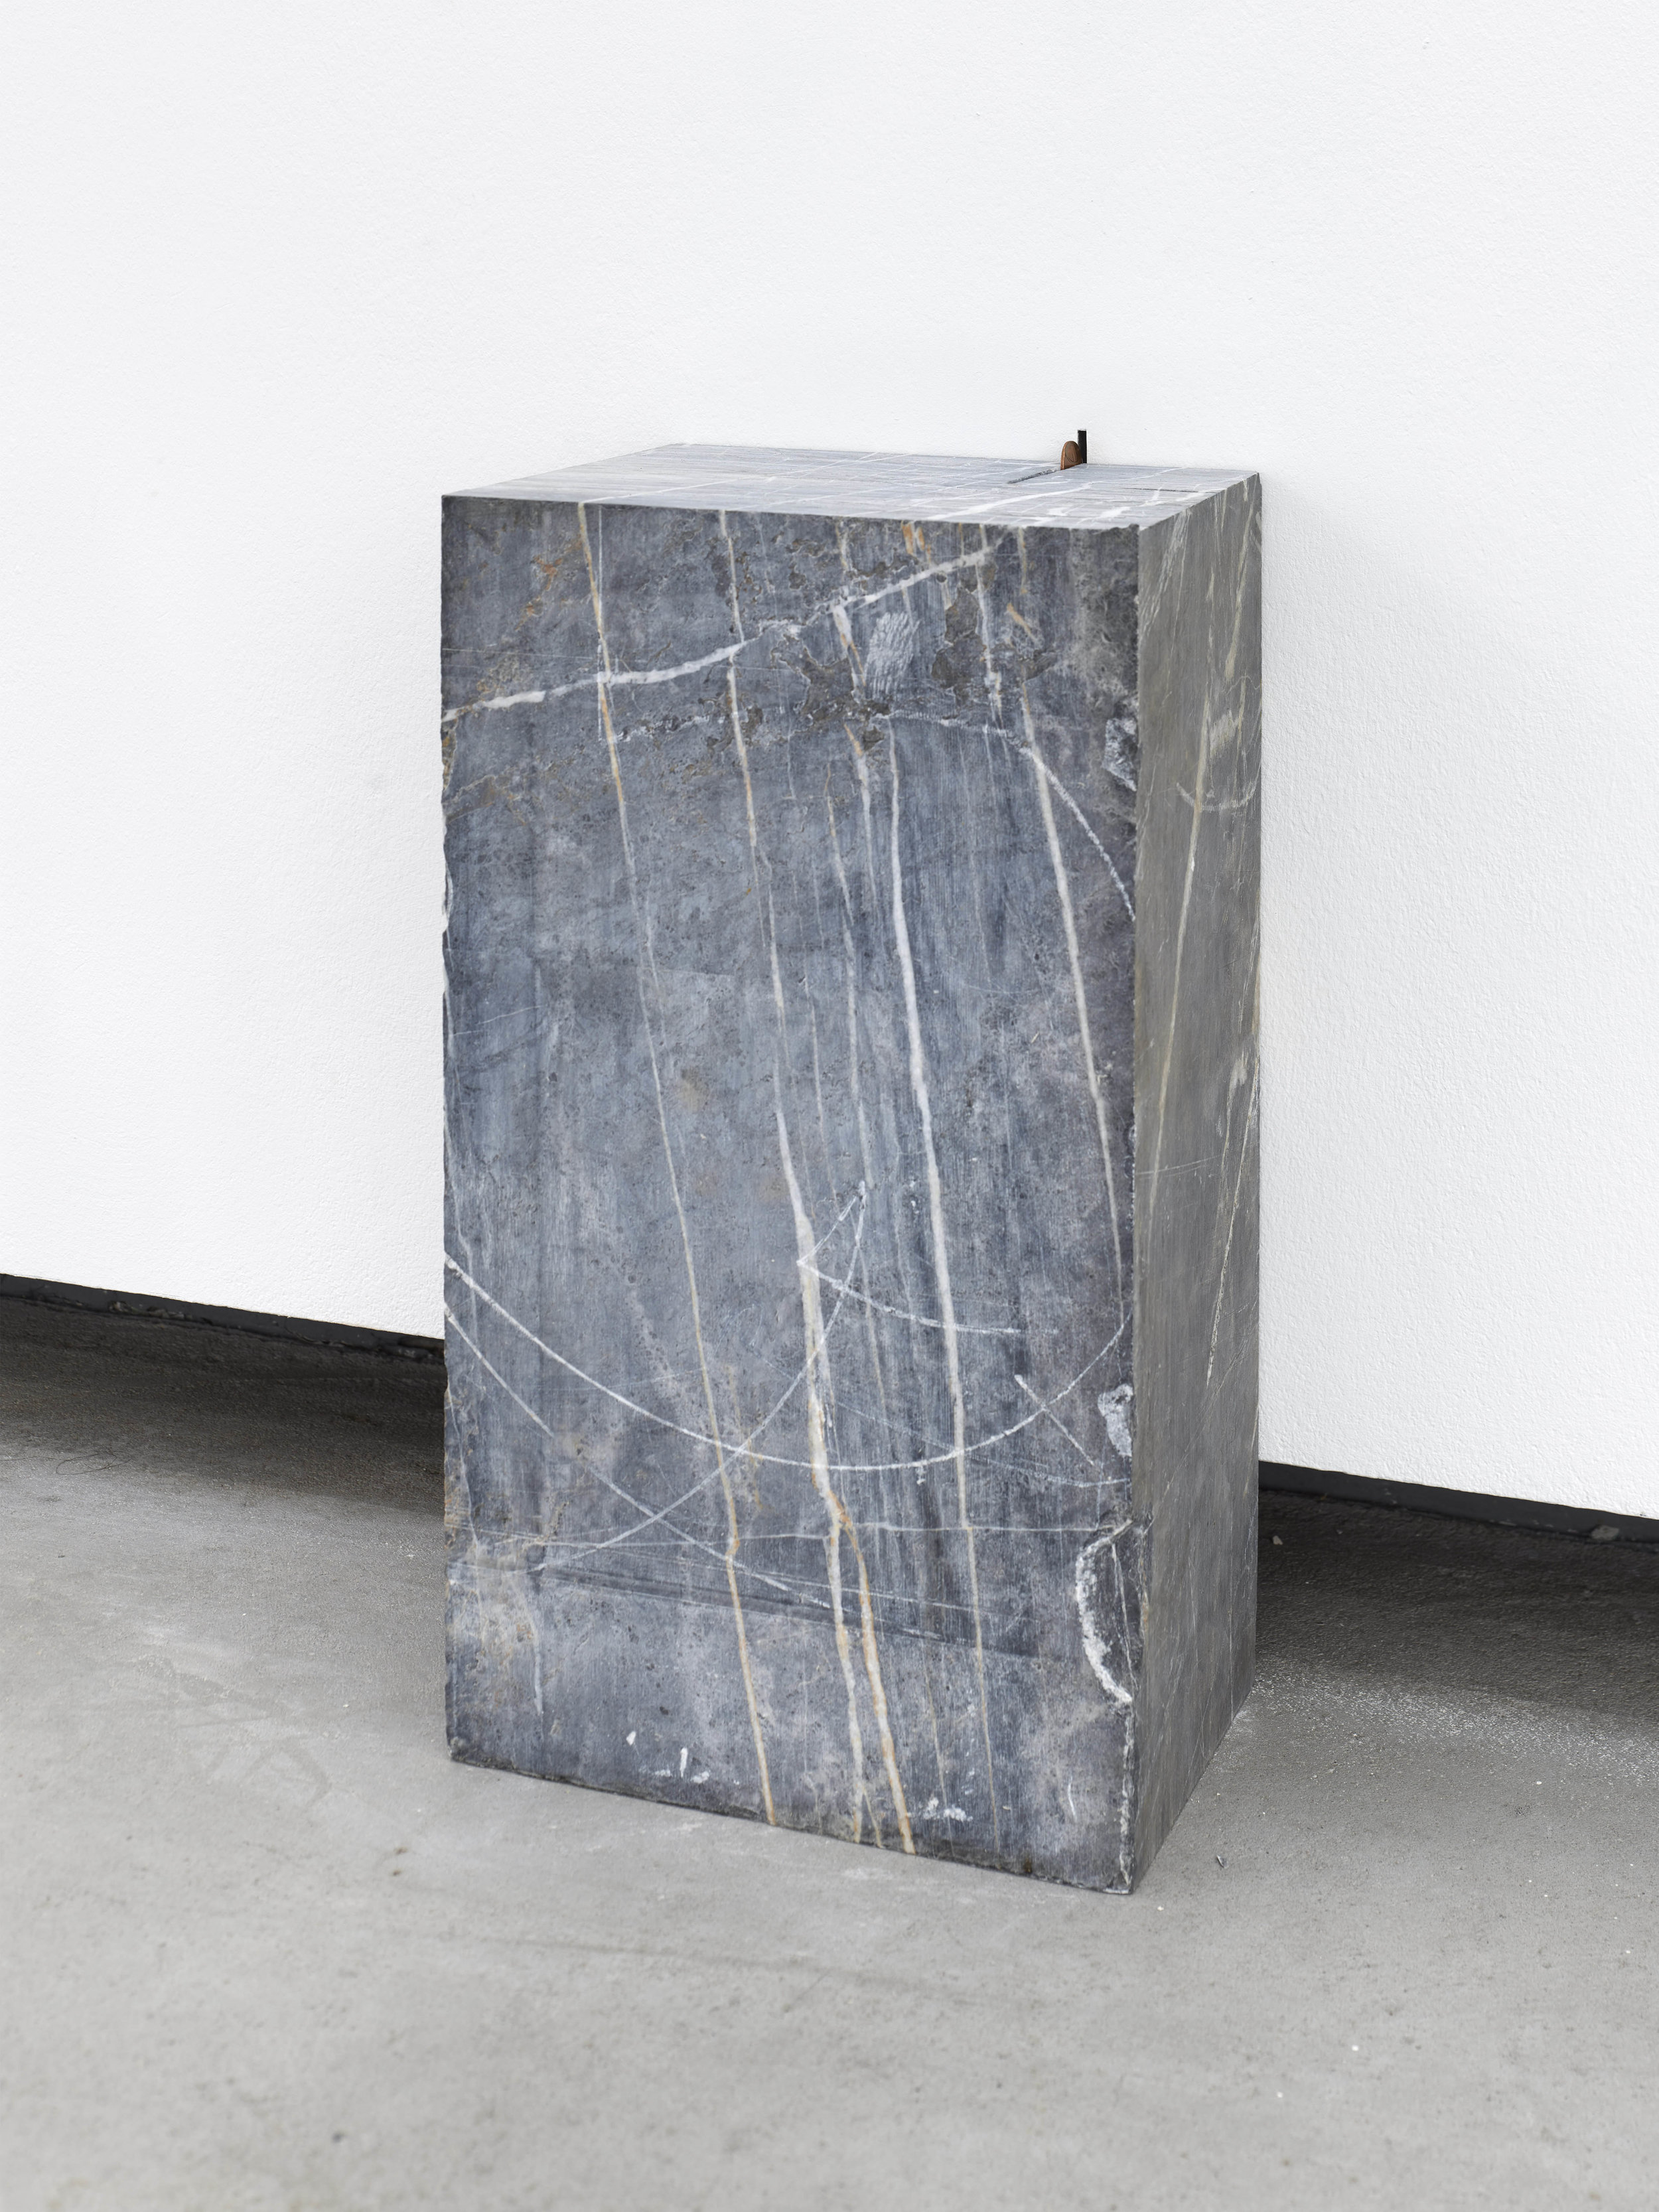 Coined Notion,  2016  marble and mis-struck error Lincoln coin  48 x 18 x 23 cm